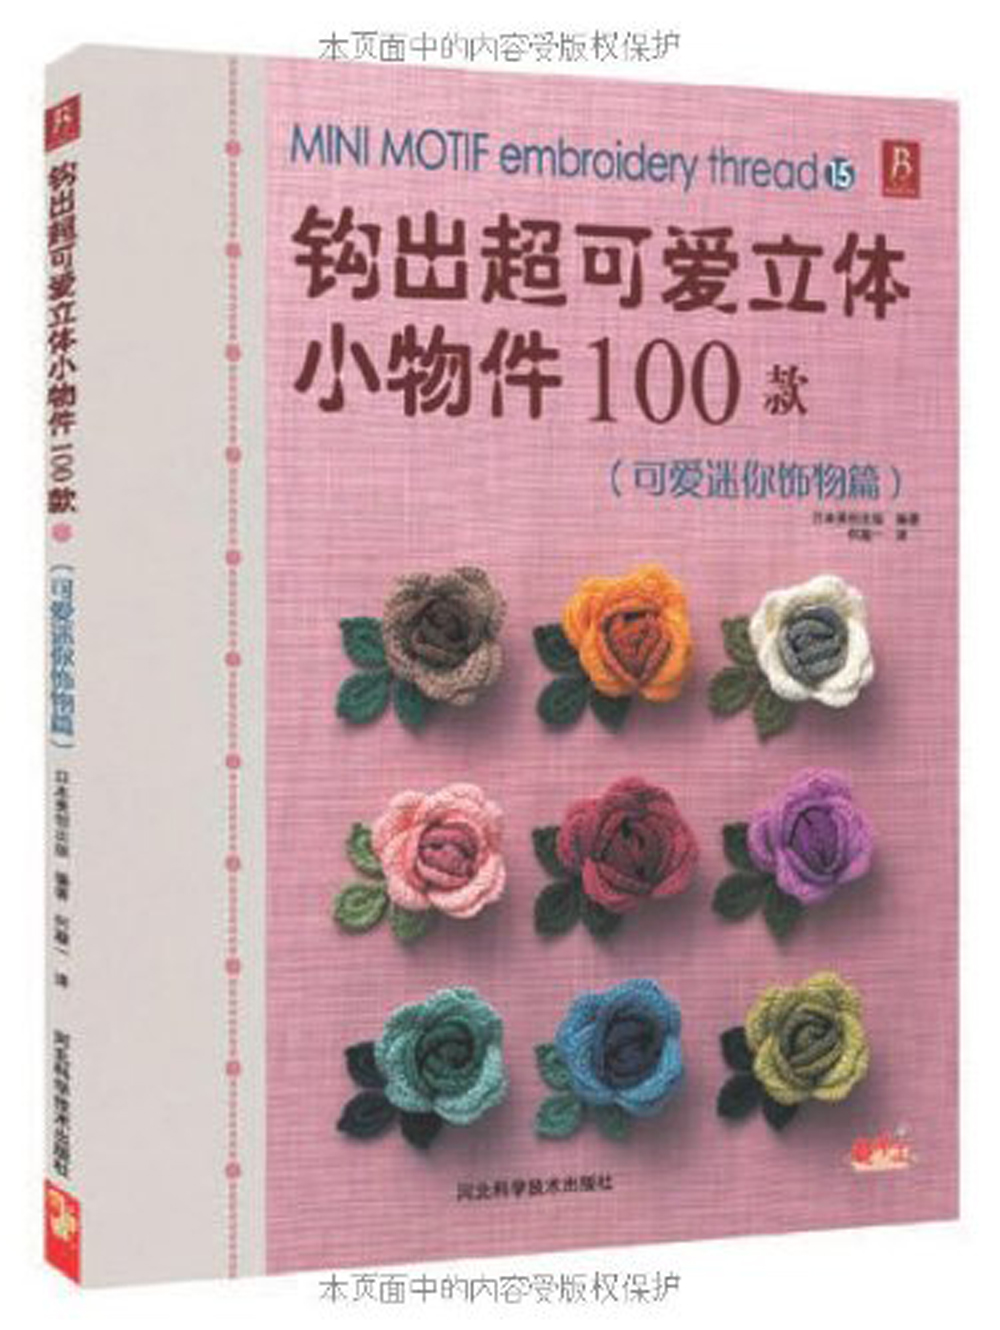 MINI MOTIF Embroidery Thread 15/ Weaving super-cute 3d small objects 100 models Chinese knitting book 100 super cute little embroidery chinese embroidery handmade art design book